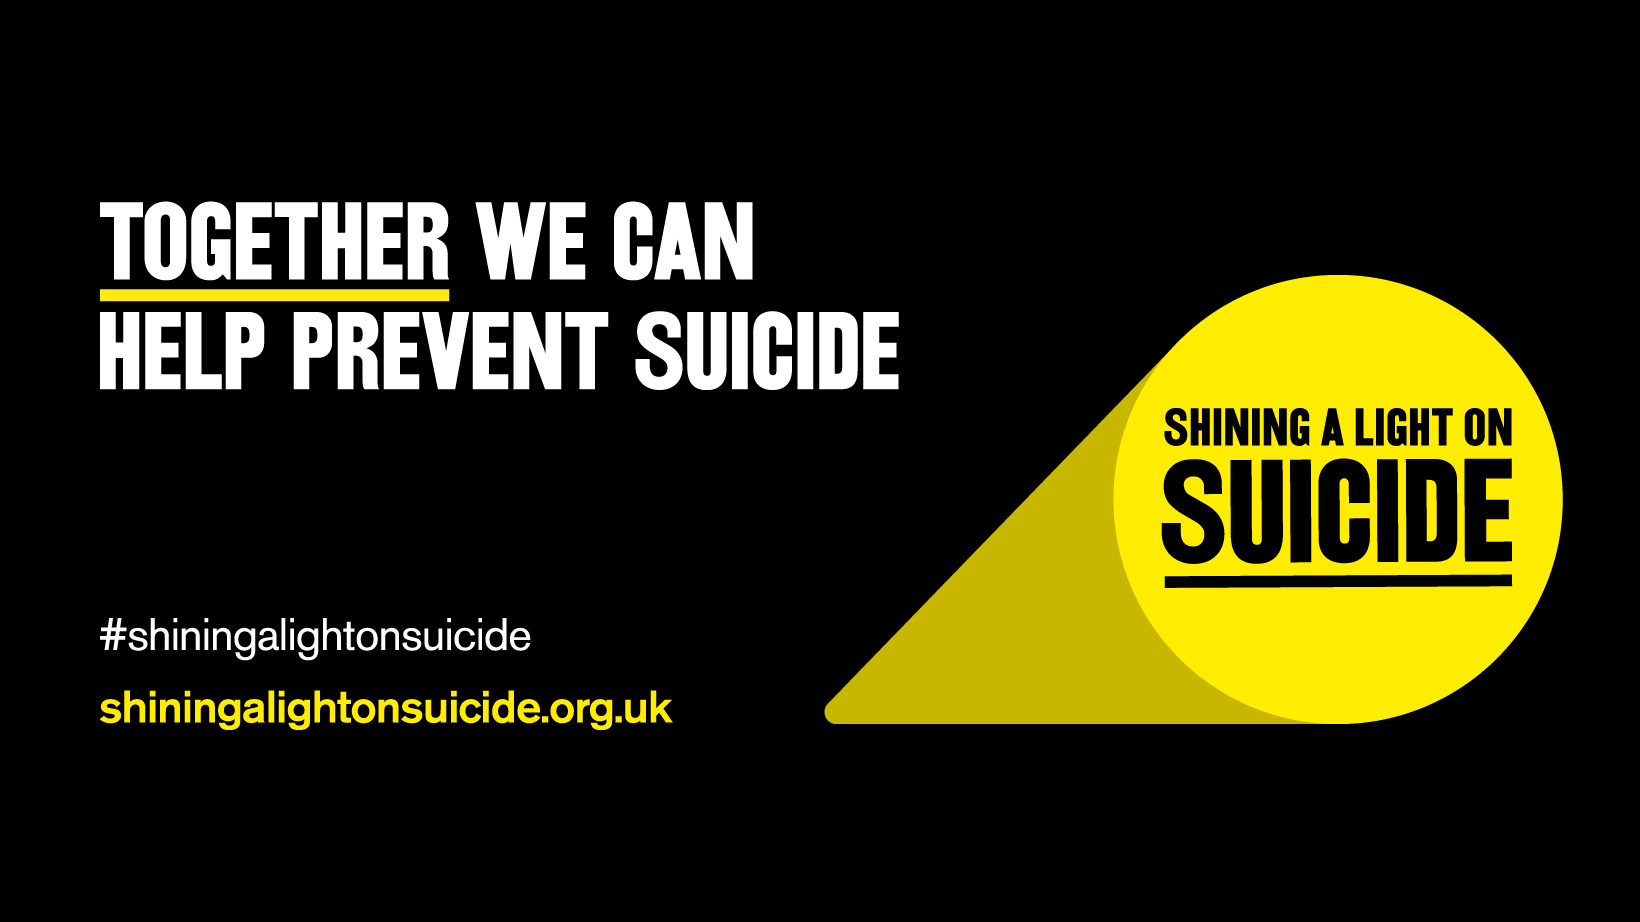 Together we can help prevent suicide. #shiningalightonsuicide shiningalightonsuicide.org.uk